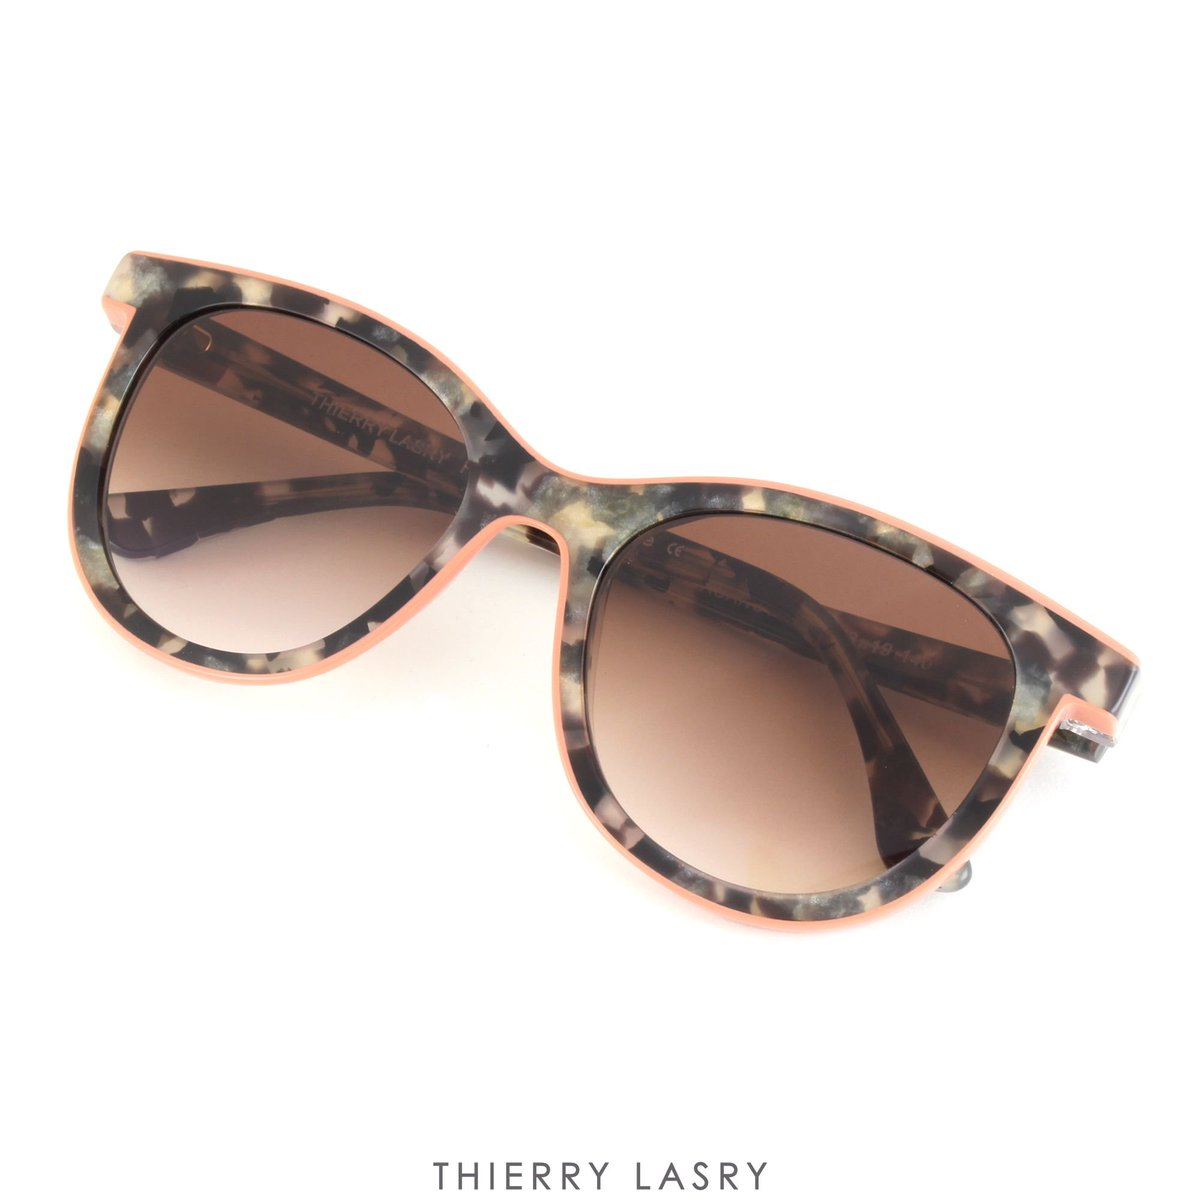 a22b568074a Shop the style today  https   www.specscollective.com collections thierry- lasry-sunglasses products thierry-lasry-sunglasses-vacancy …